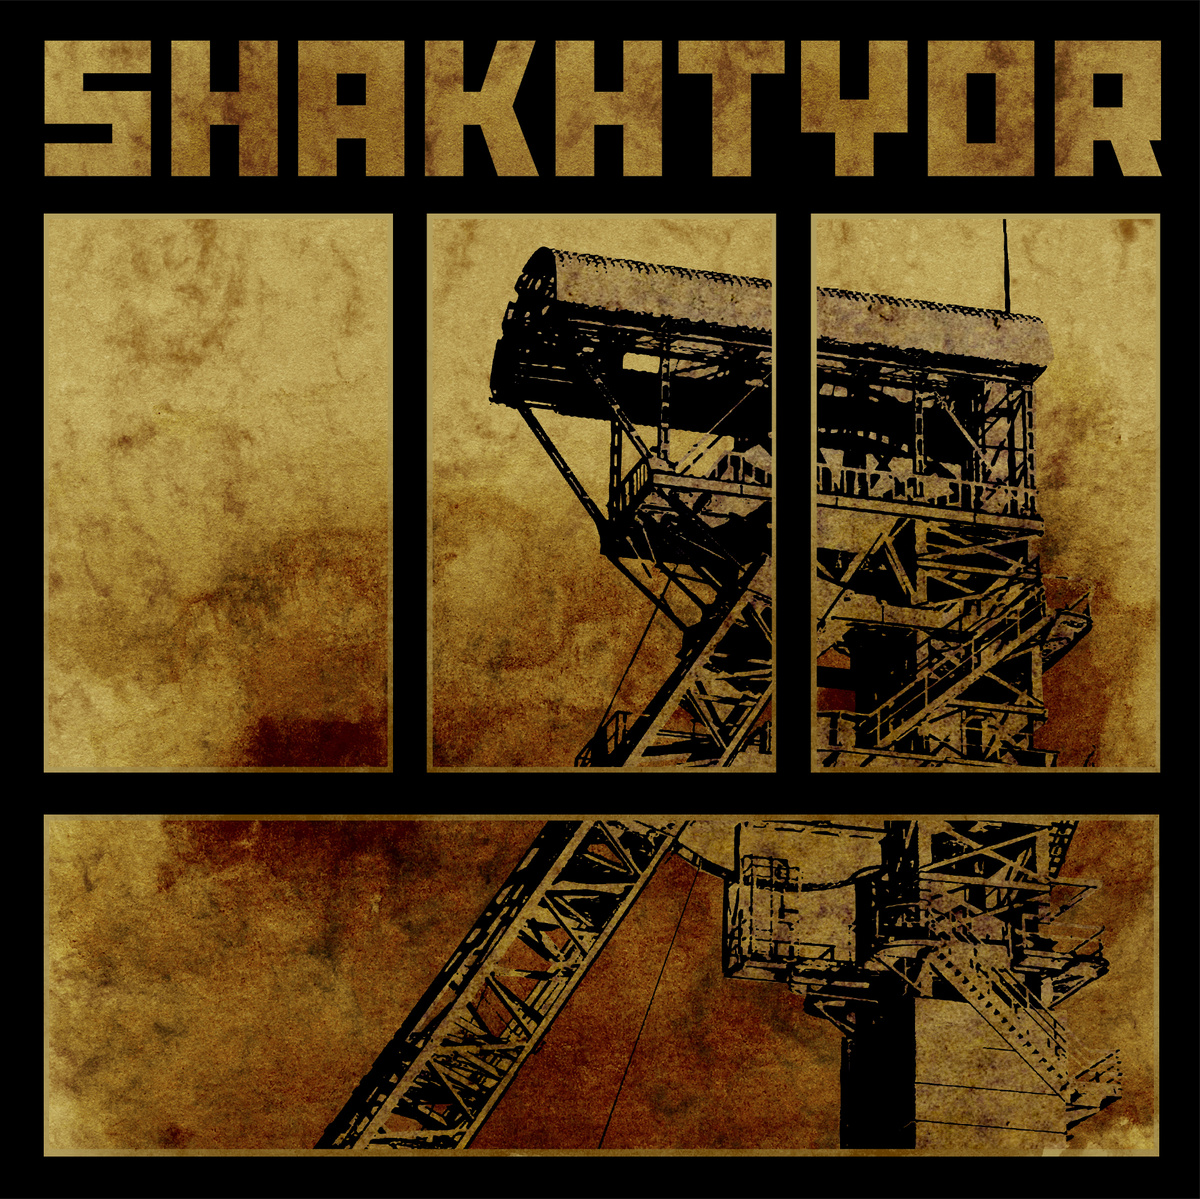 Shakhtyor – Shakhtyor Review